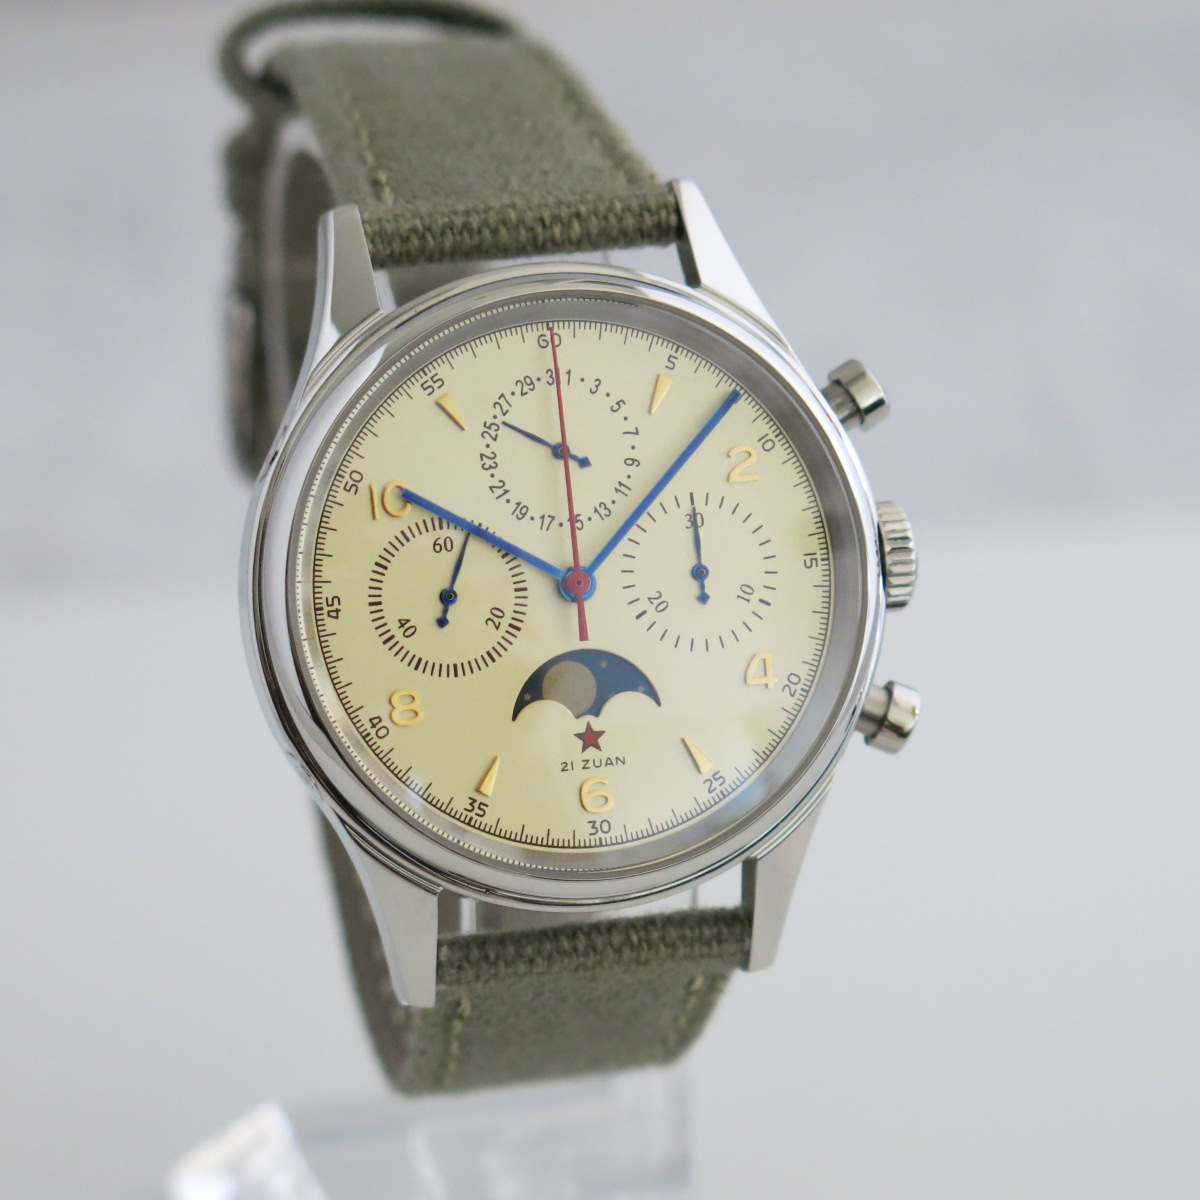 1963 reissue aviation chronograph with date and moonphase